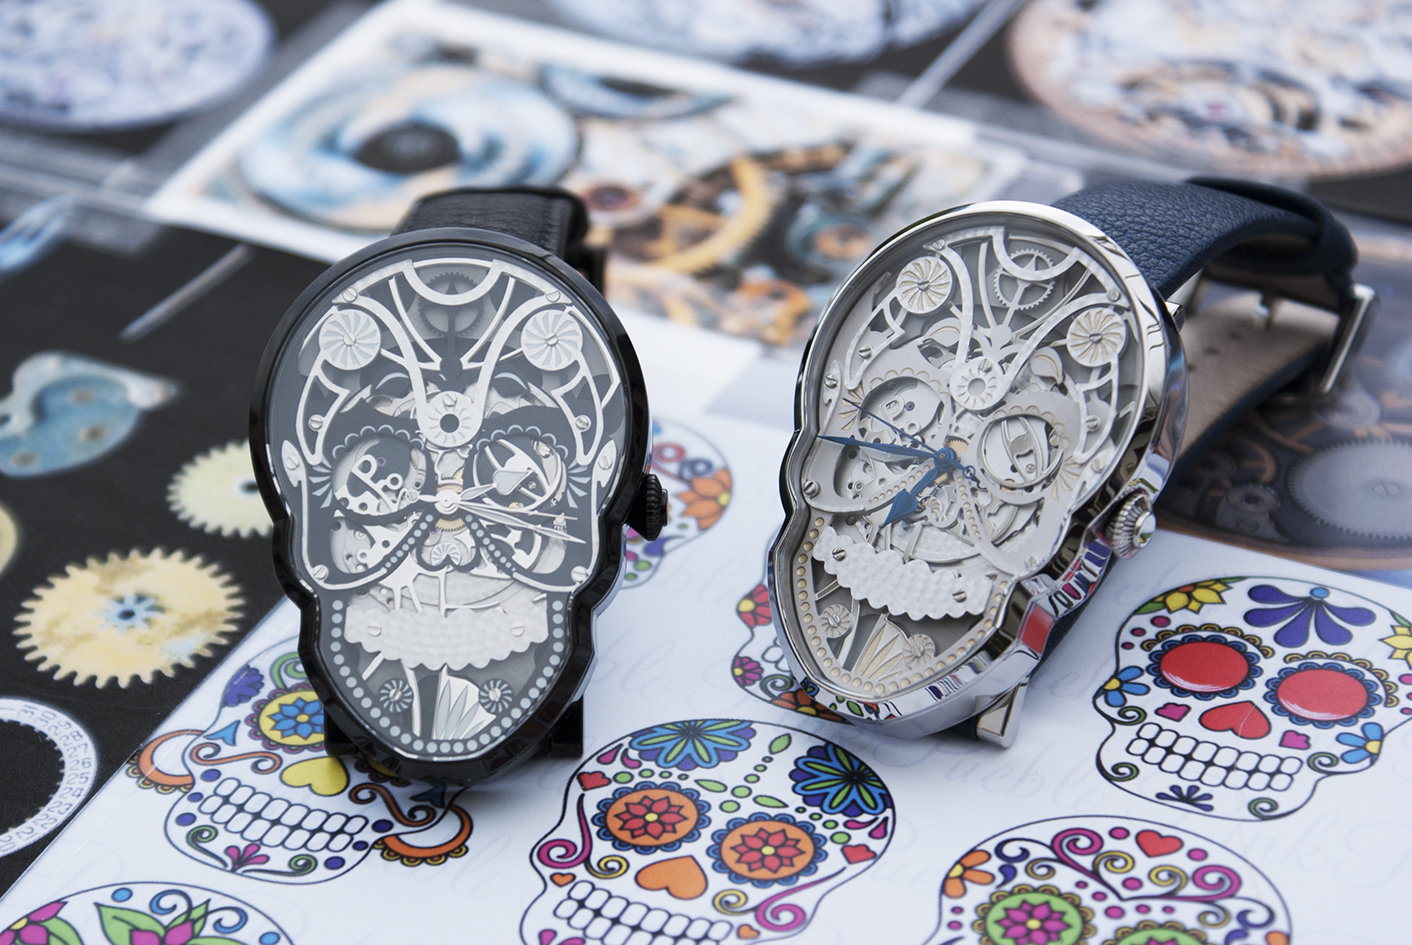 """The Skull and Black Skull watches are in part inspired by the """"Dia de los Muertos"""" celebration in Mexico."""